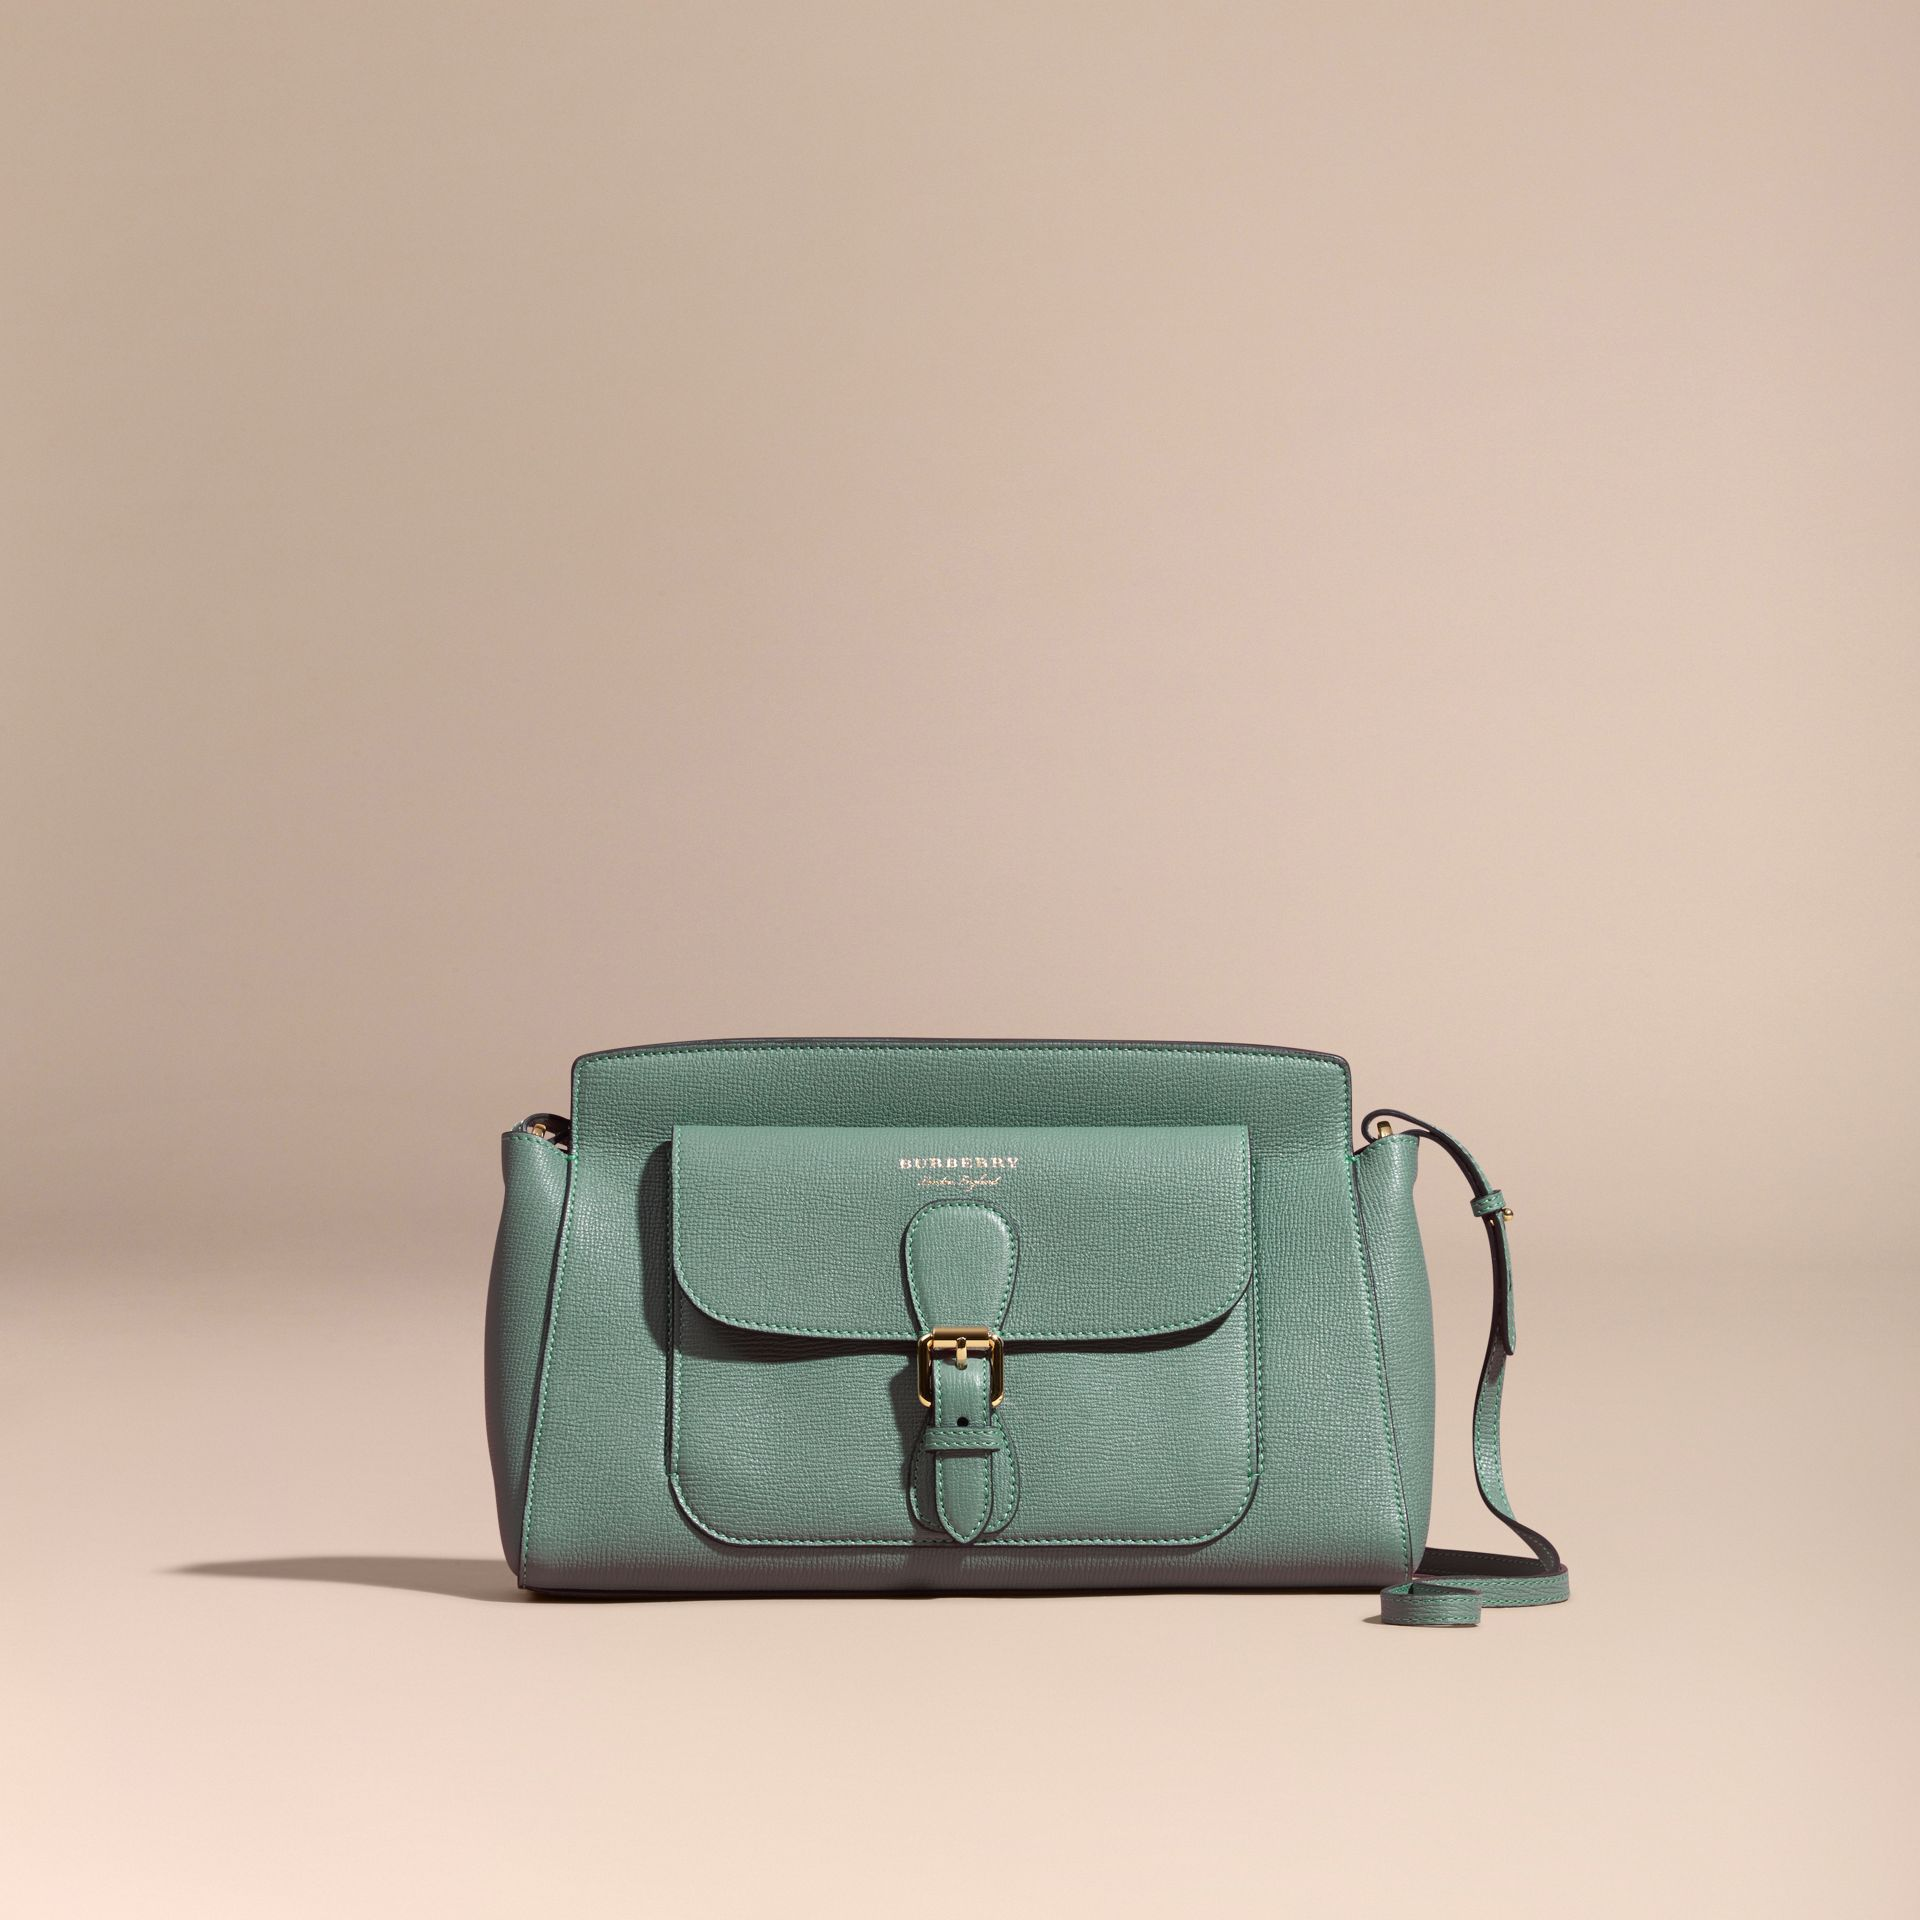 Smokey green The Saddle Clutch in Grainy Bonded Leather Smokey Green - gallery image 8